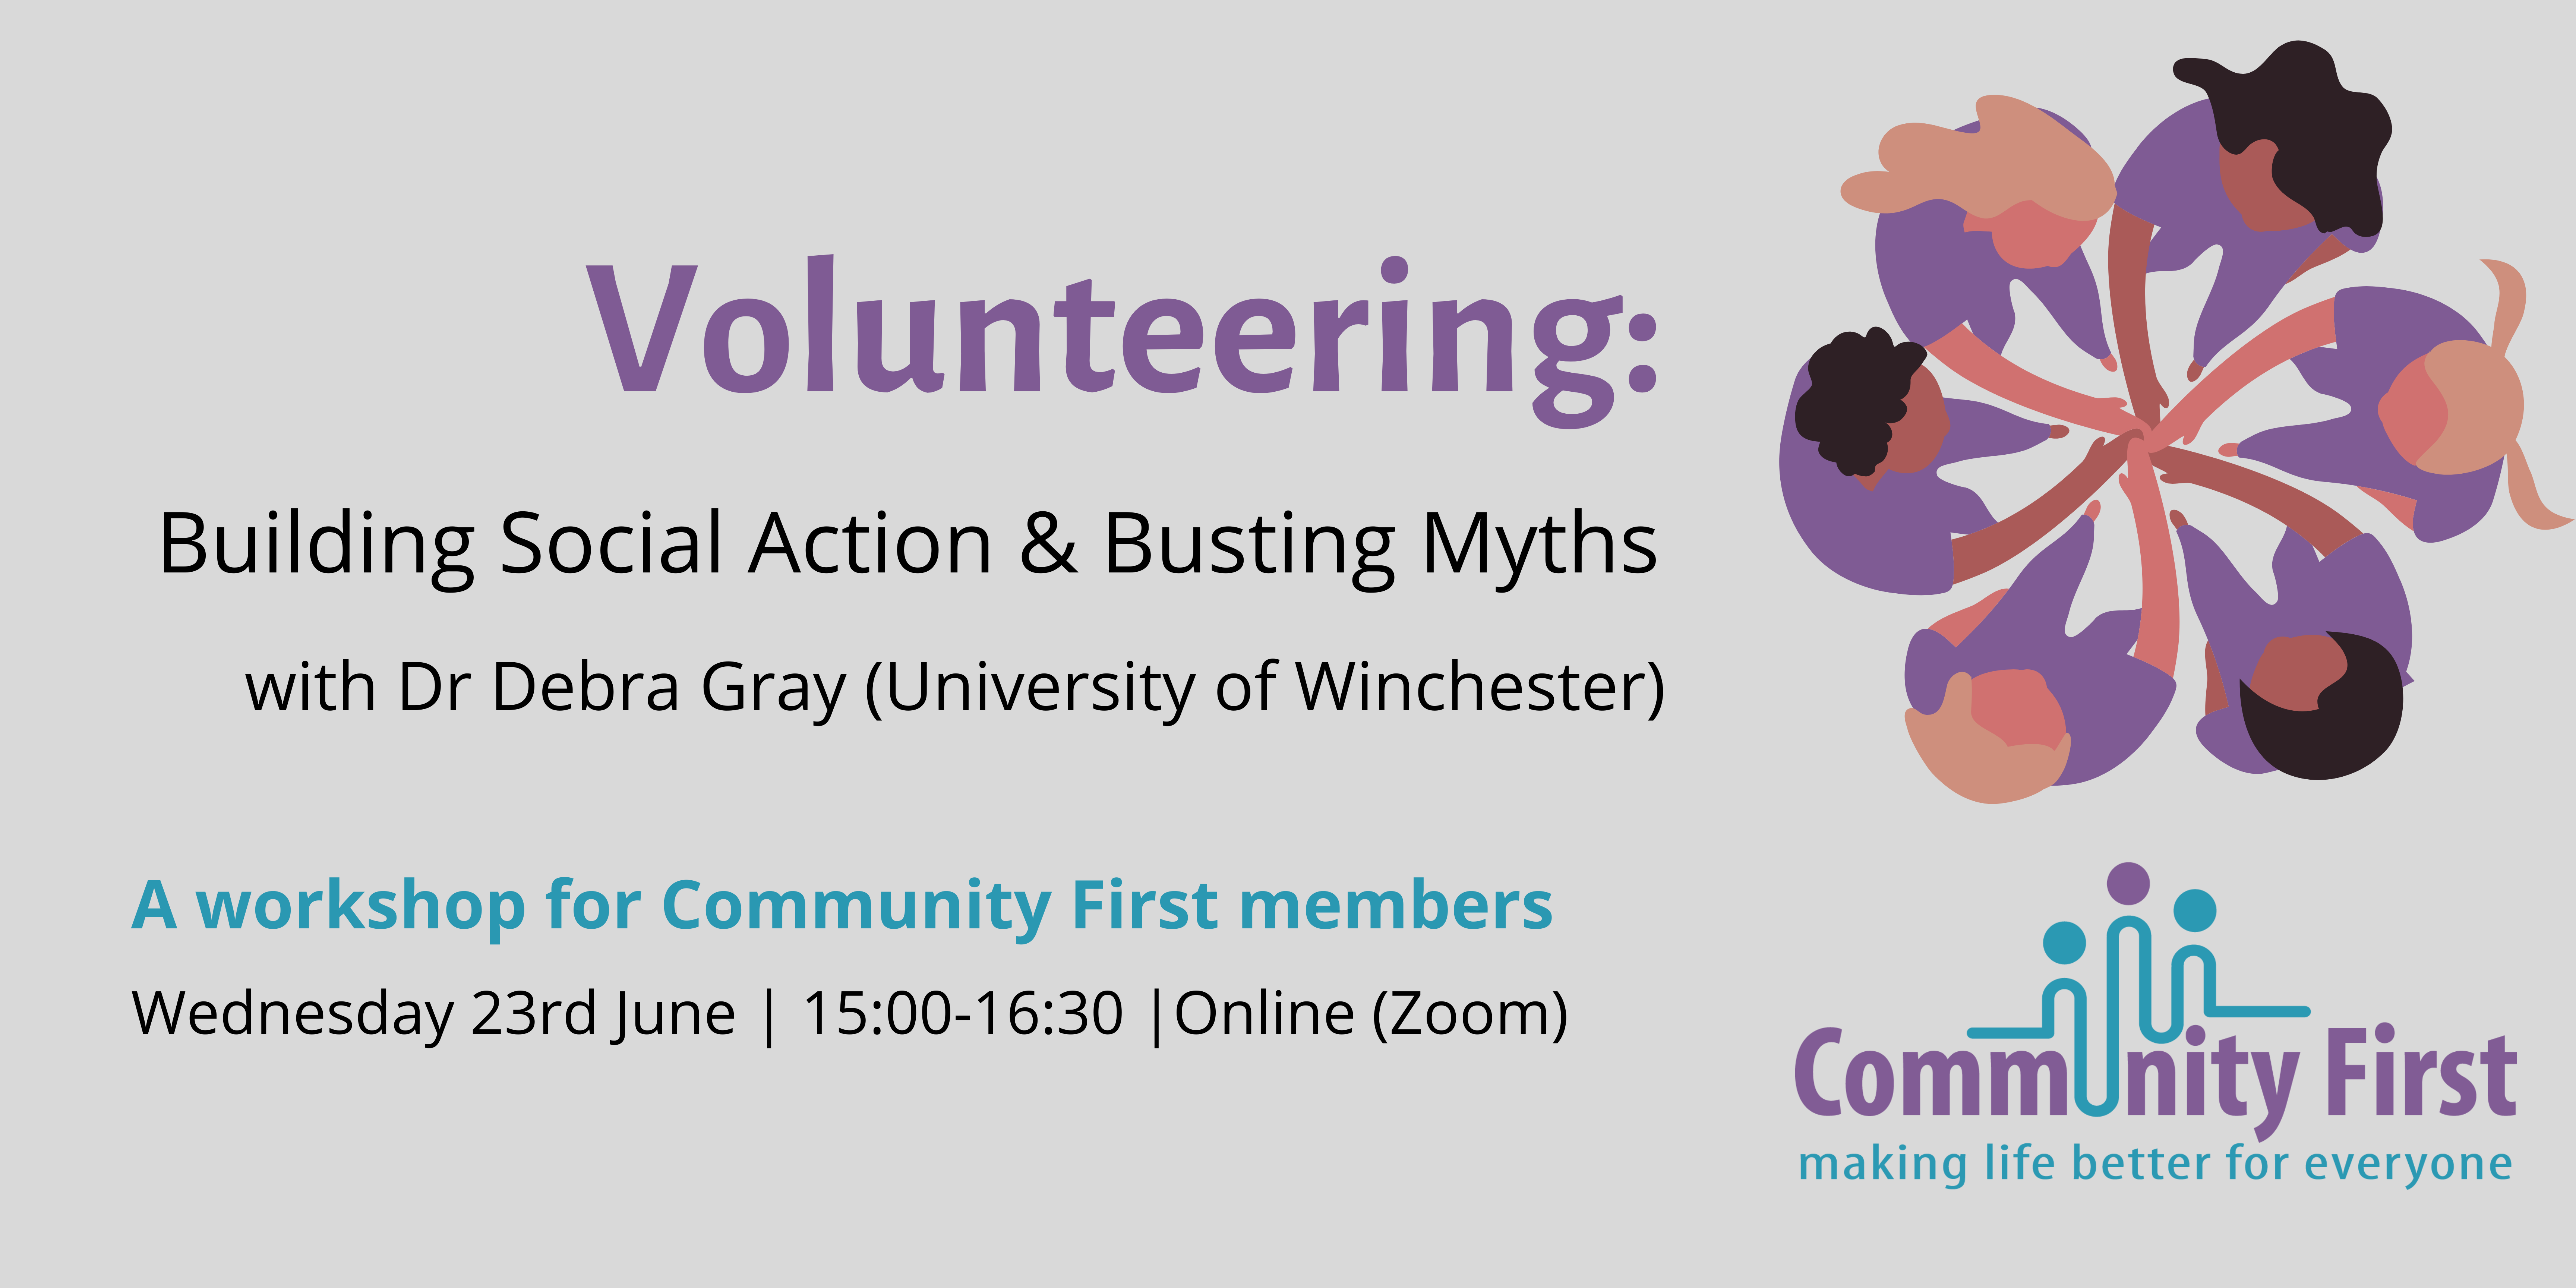 Image reads: Volunteering: Building Social Action & Busting Myths with Dr Debra Gray from the University of Winchester. A workshop for Community First members. Wednesday 23rd July, 3pm until 4:30pm, hosted online via Zoom.